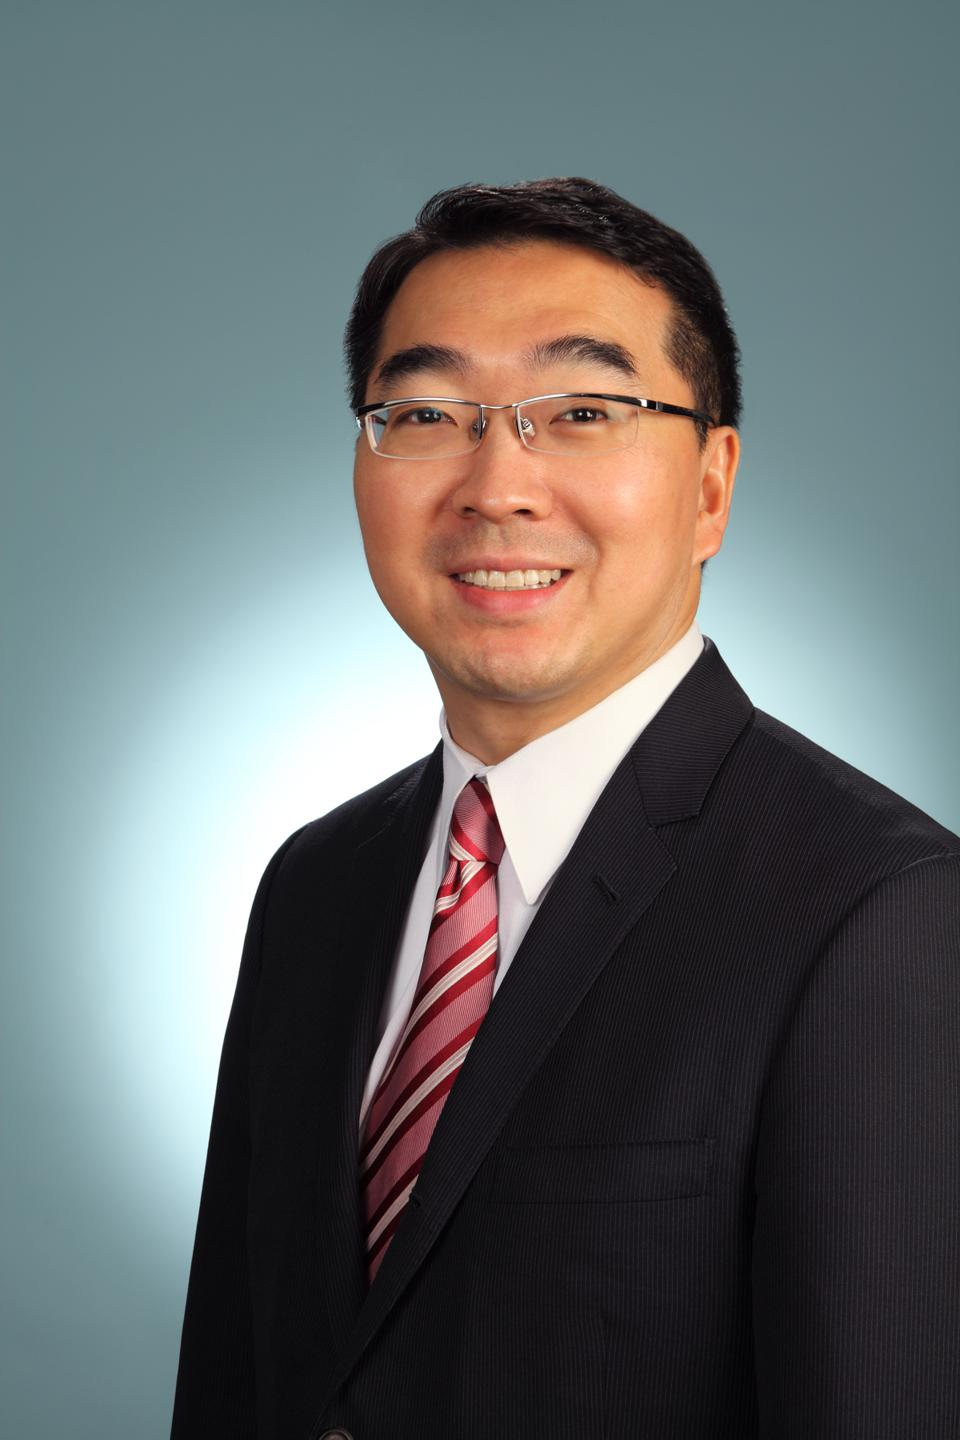 Jay Koh, Co-Founder & Managing Director, The Lightsmith Group